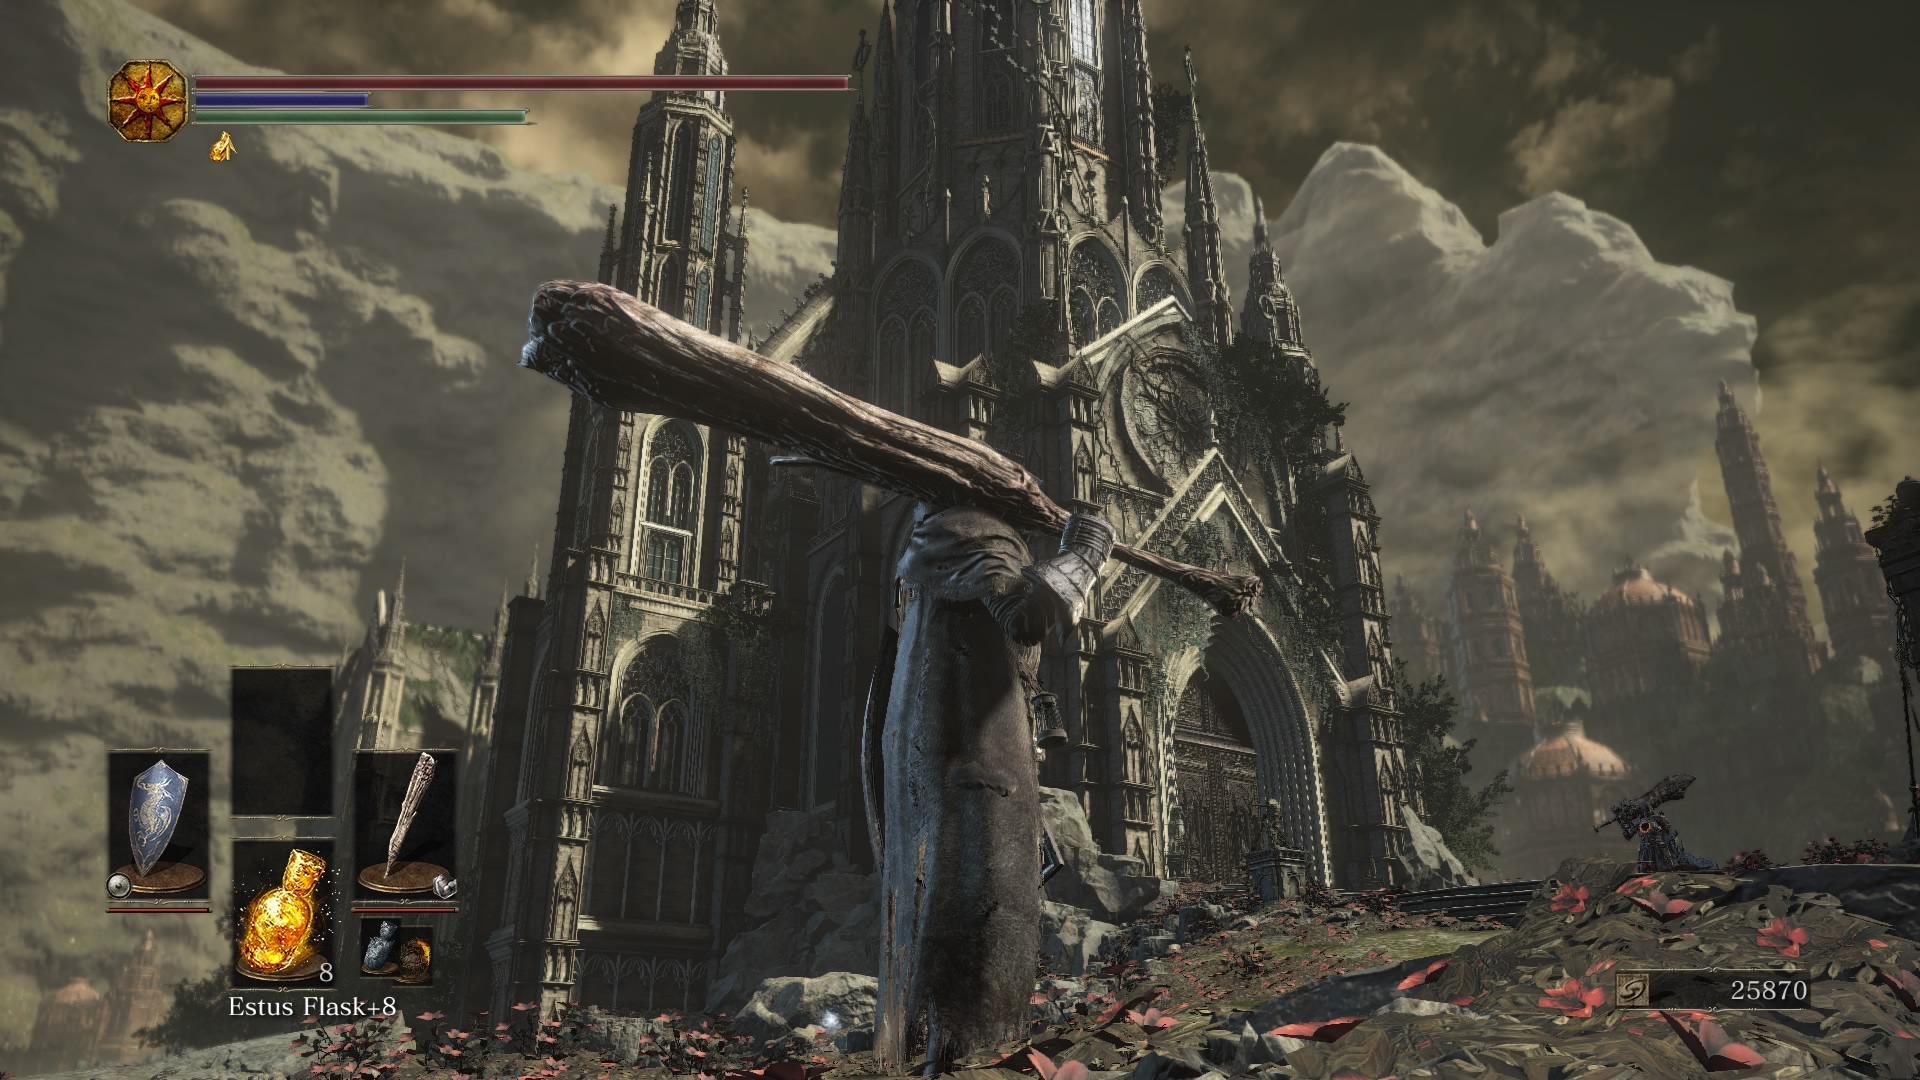 Dark souls 3 the ringed city full walkthrough the ringed city when midir is down cross the bridge to reach the door lit by two torches up the stairs pass by the statue of gwyn to reach the exterior of the church of biocorpaavc Gallery